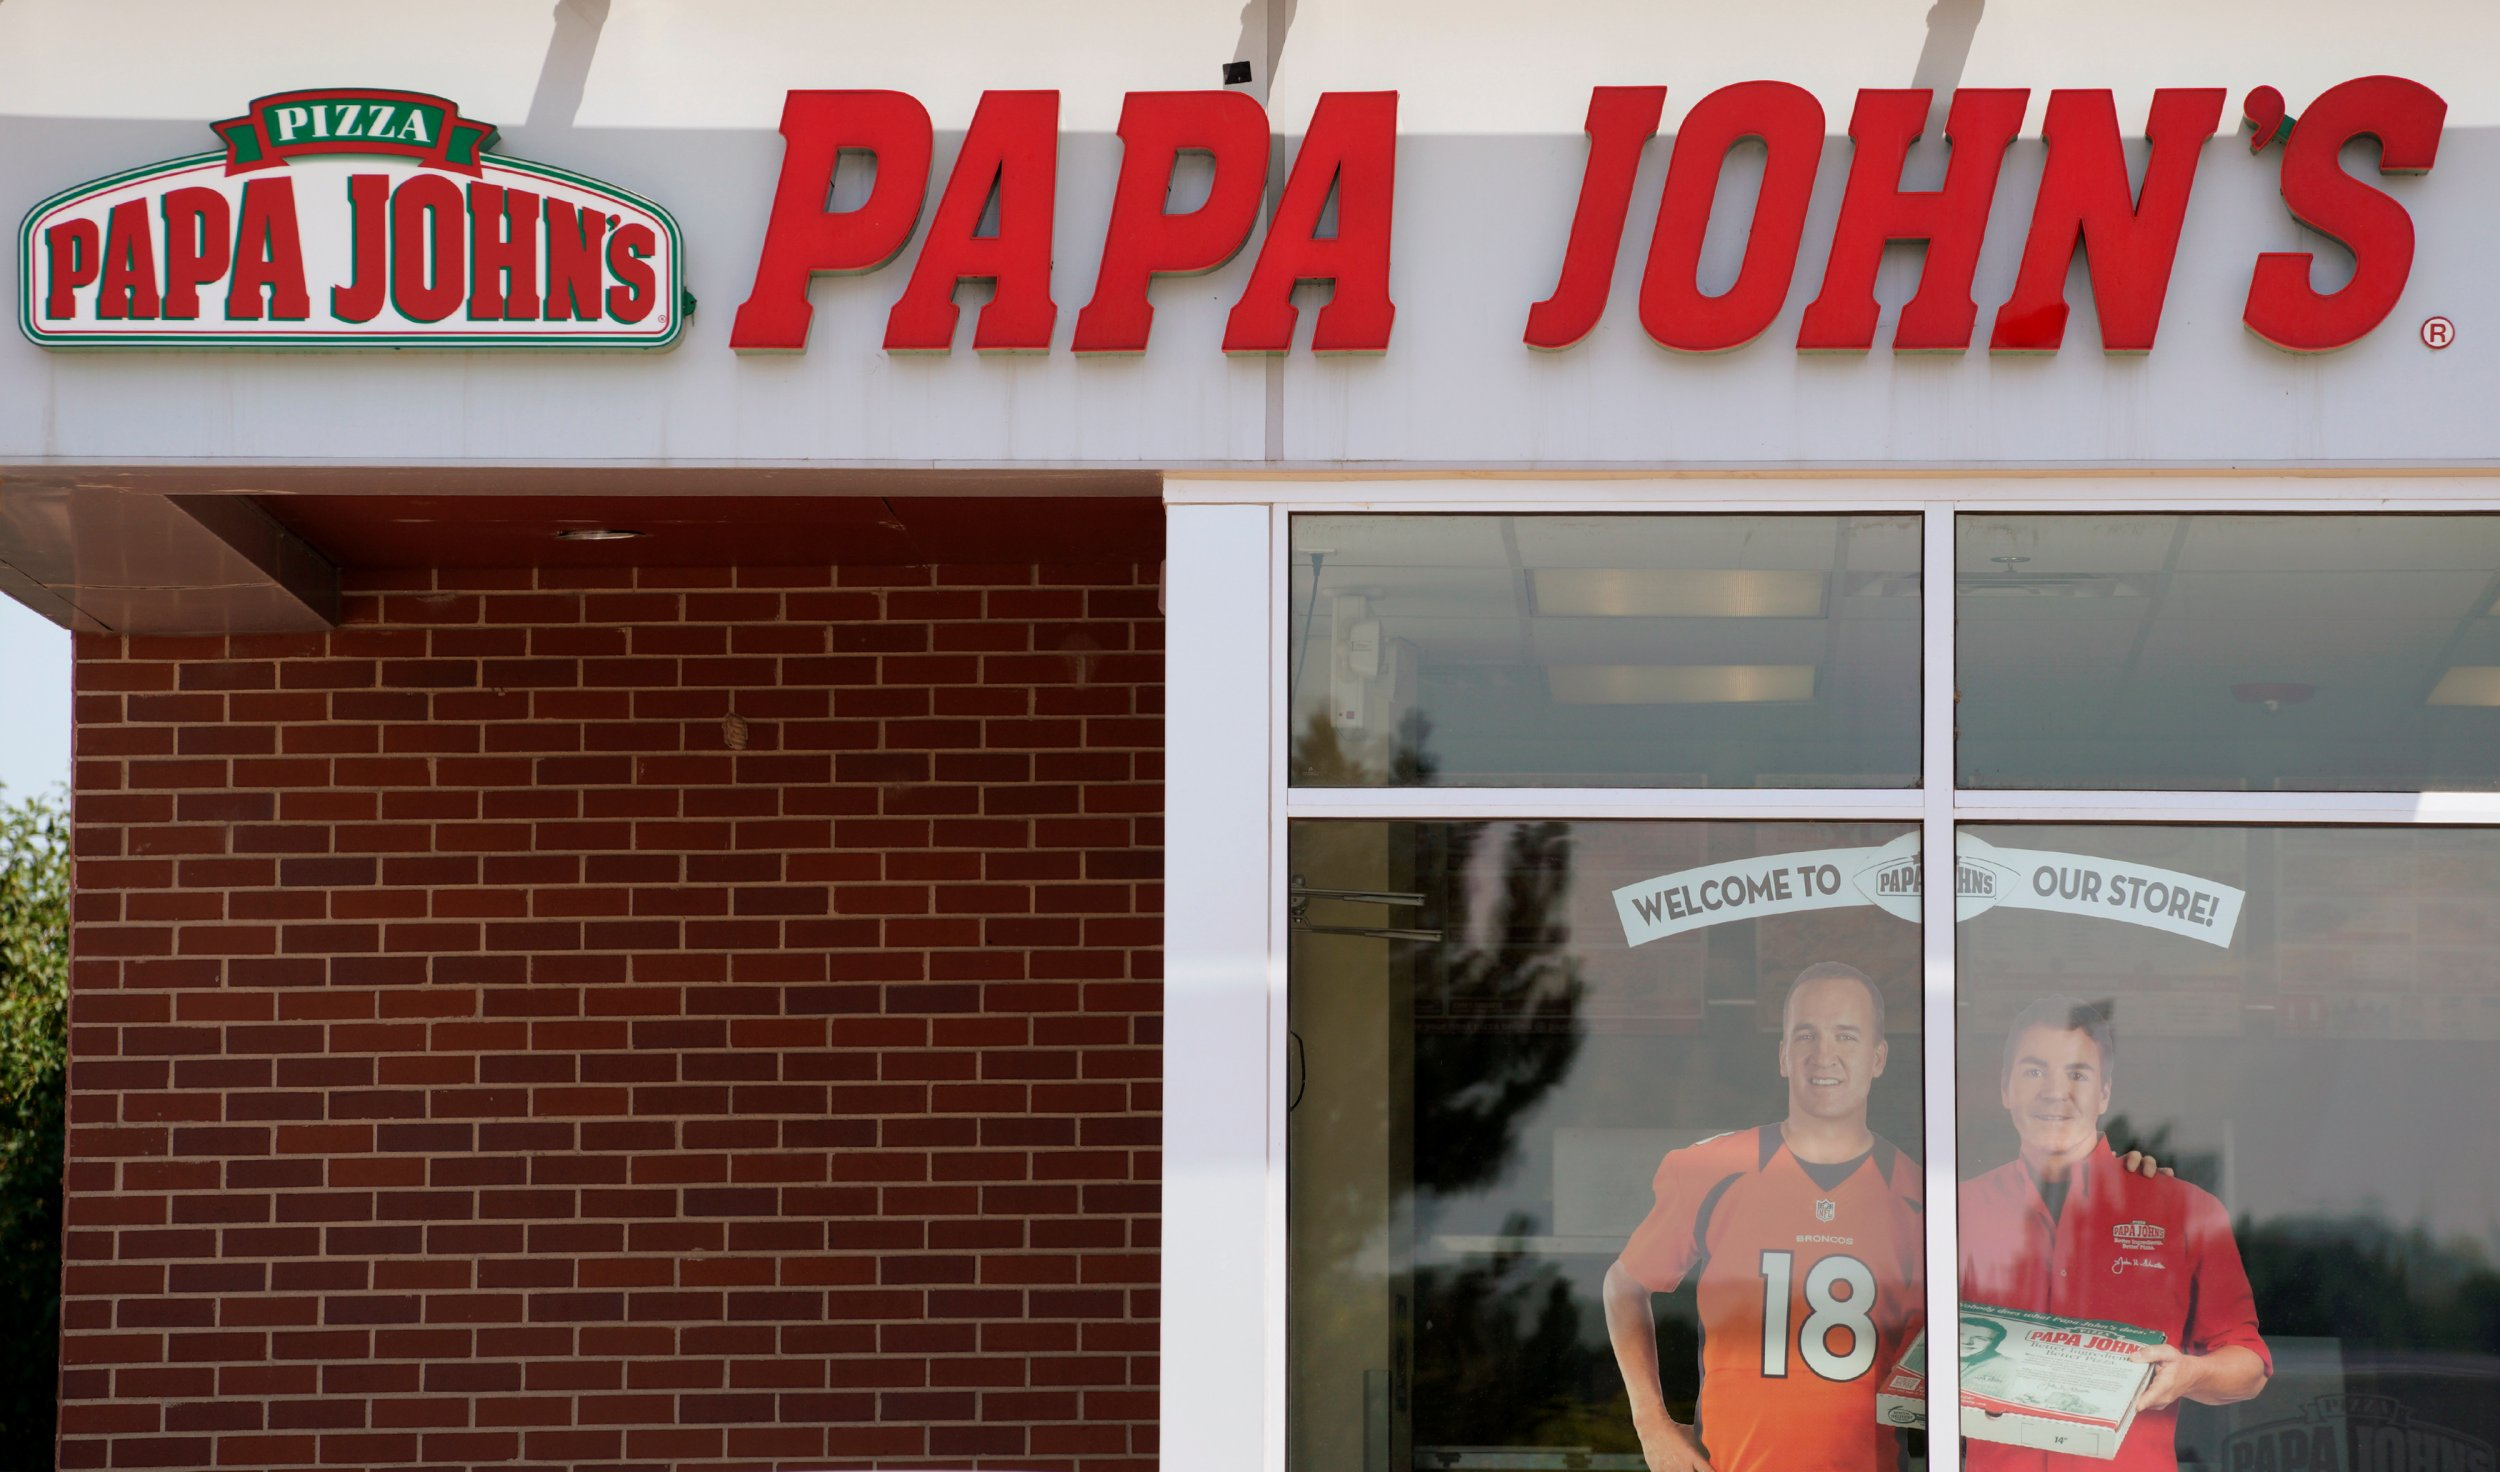 Alt-Right White Supremacists Claim Papa John's as Official Pizza